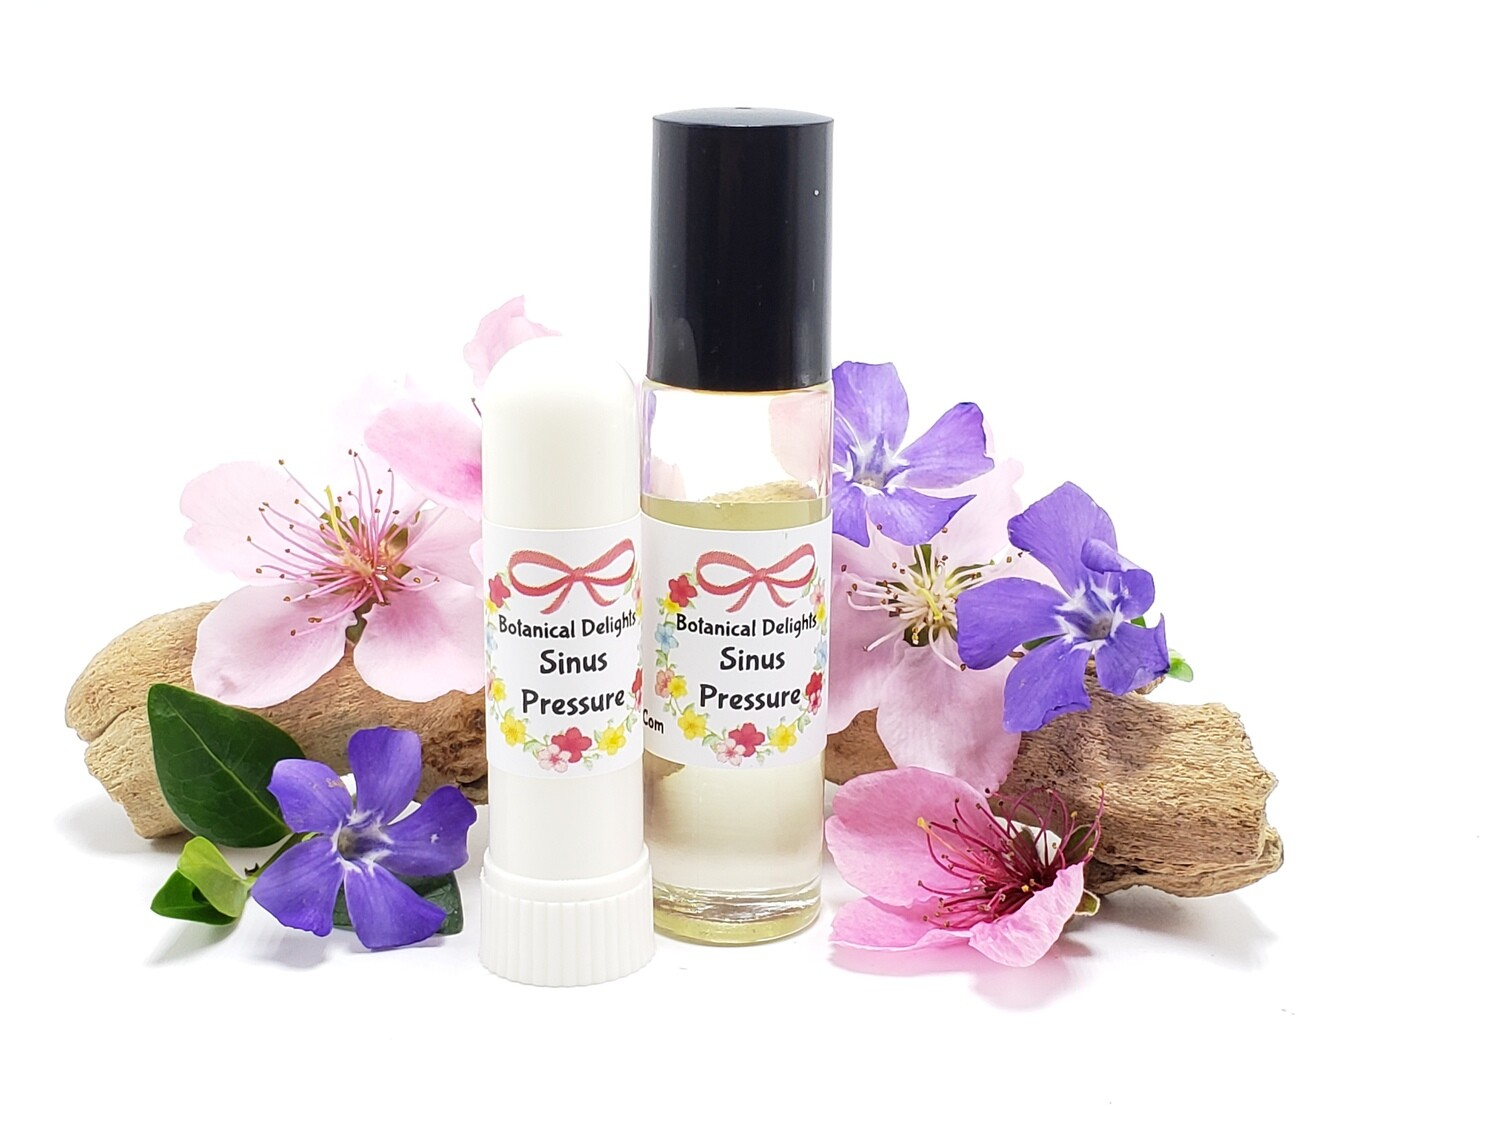 SINUS PRESSURE RELIEF ROLLER - A synergistic blend of essential oils that relieve sinus pressure and sinus headaches